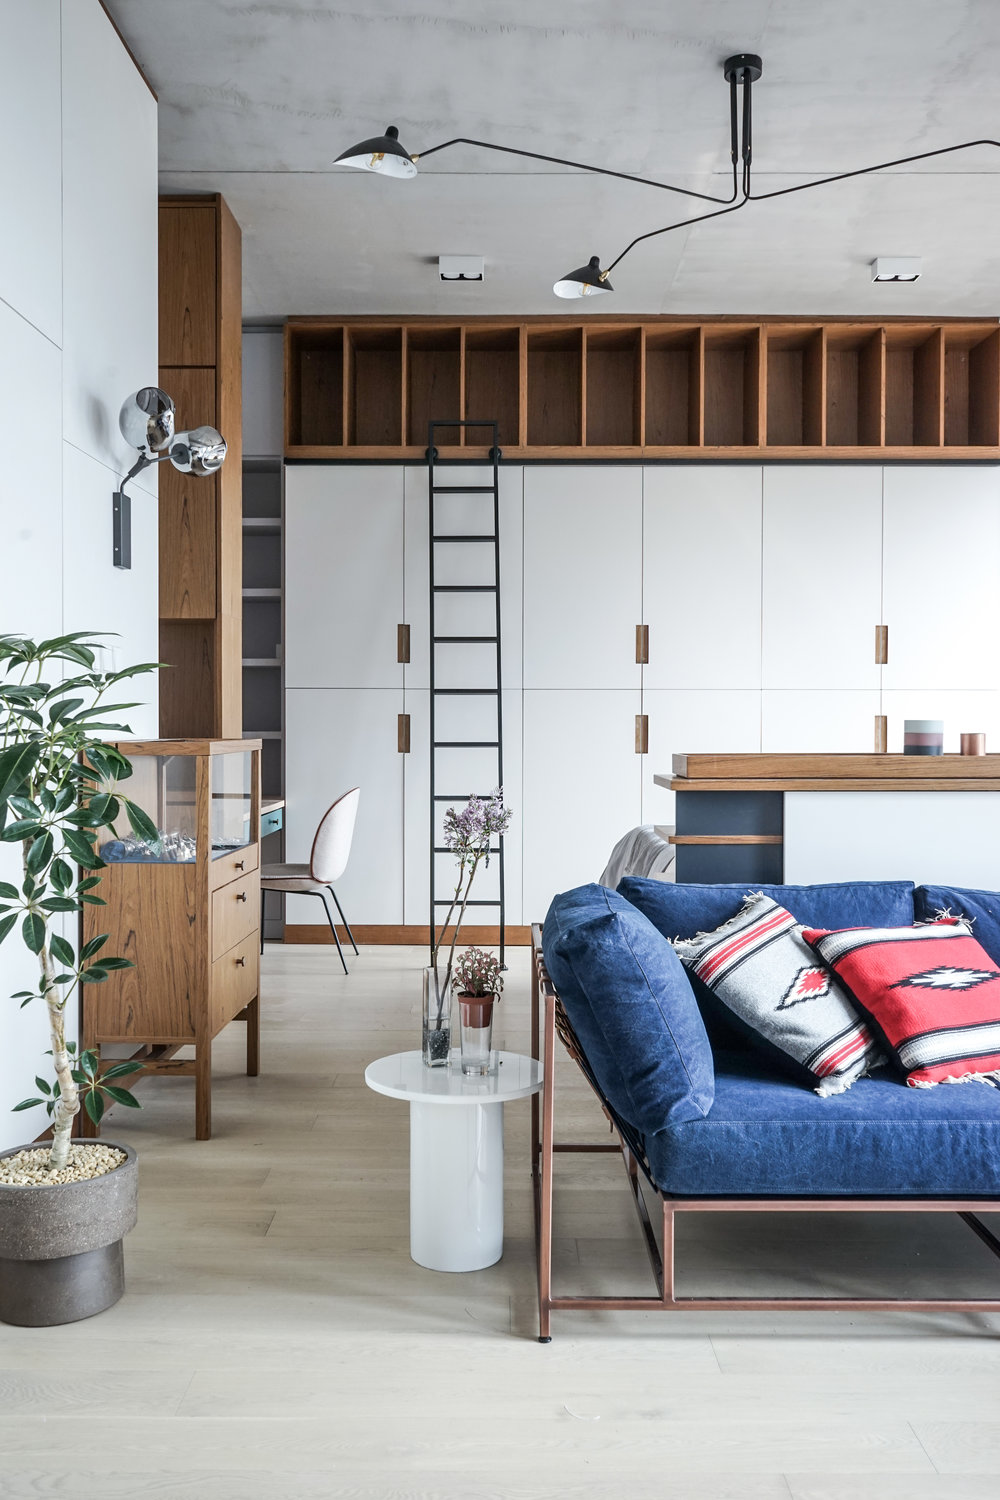 A special cross sectioned column is placed in the back of the sofa near exterior wall not only paying a tribute to the signature column of mies van der